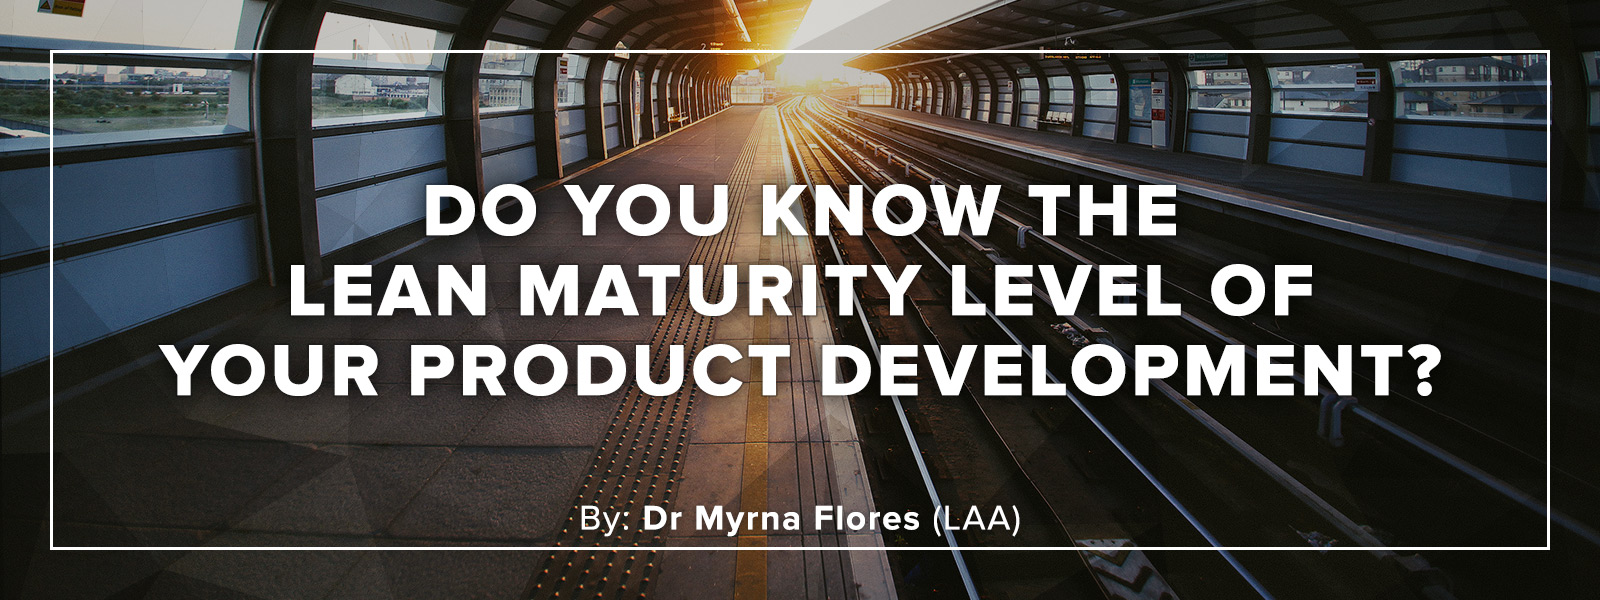 laa-blog-smart-maturity